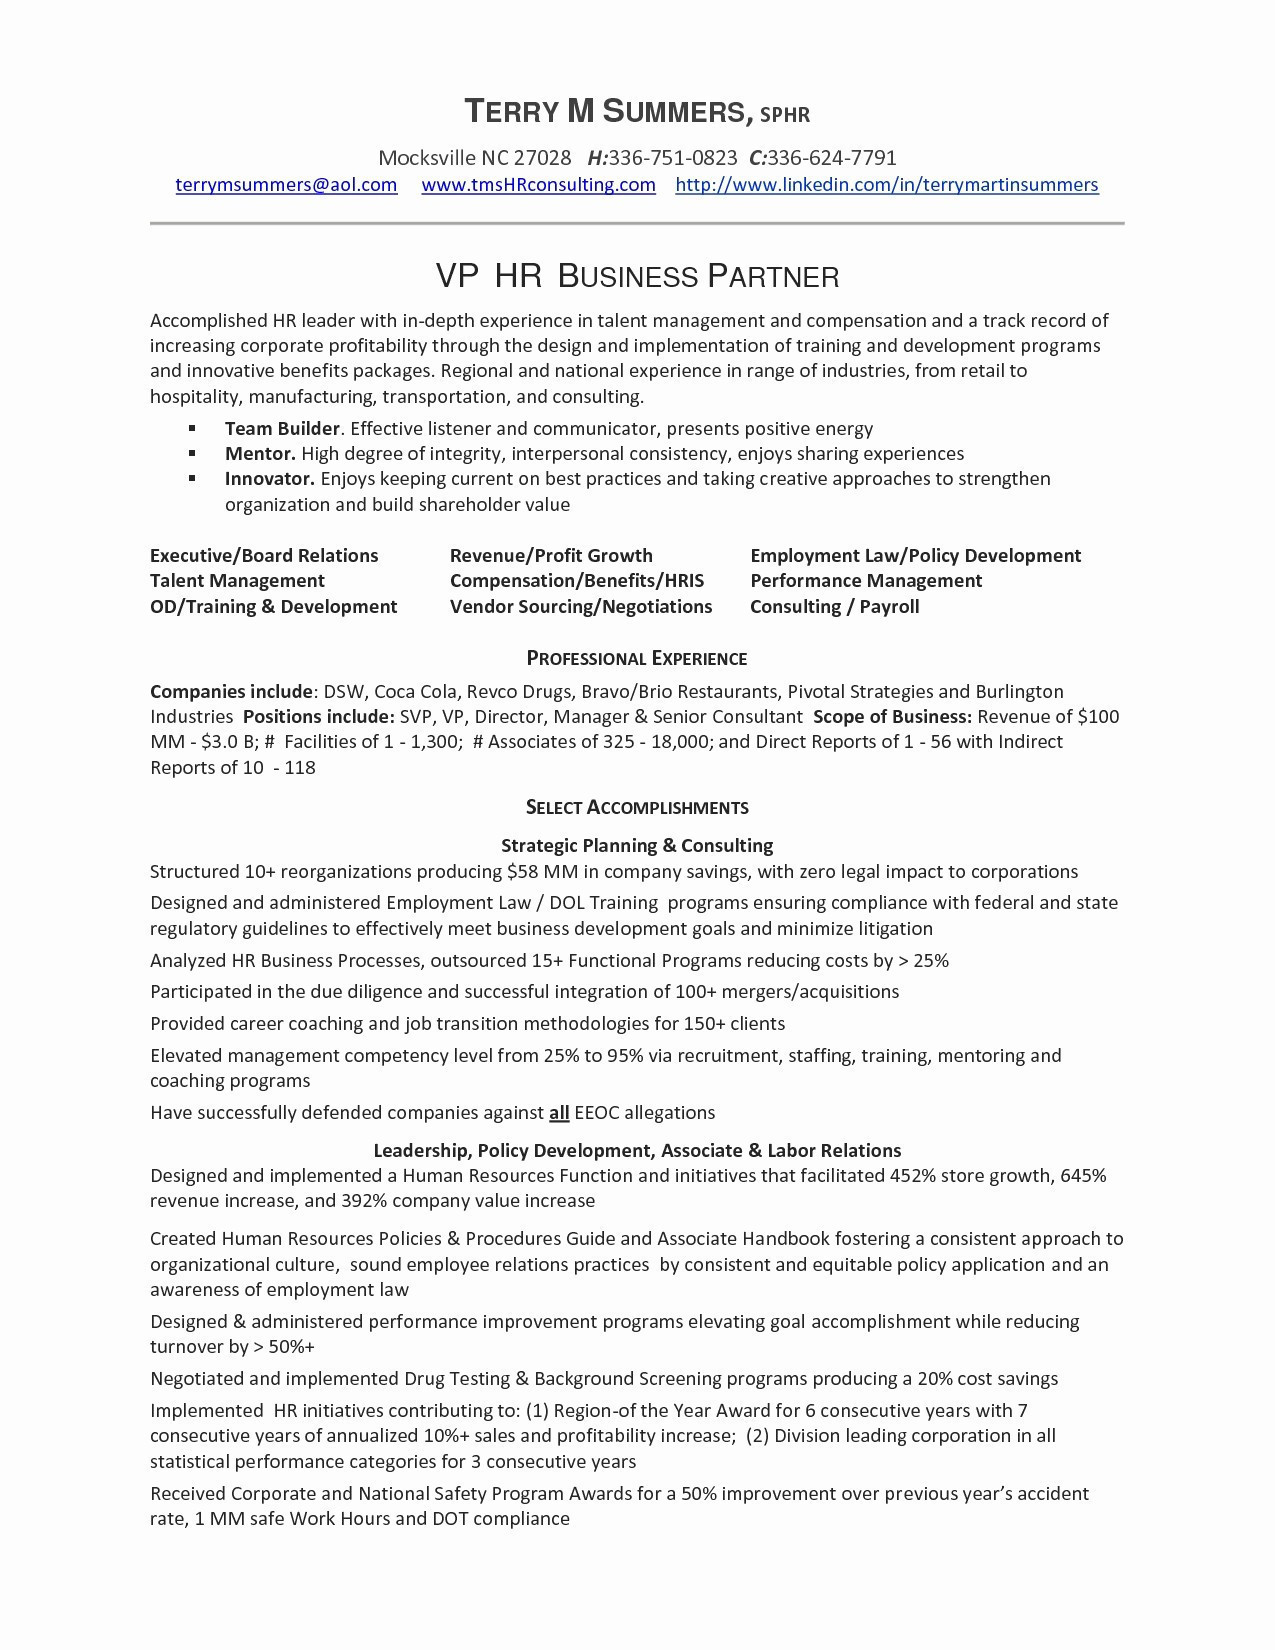 Resume Template for Construction Worker - Resume Templates for Construction Workers Fresh Construction Worker